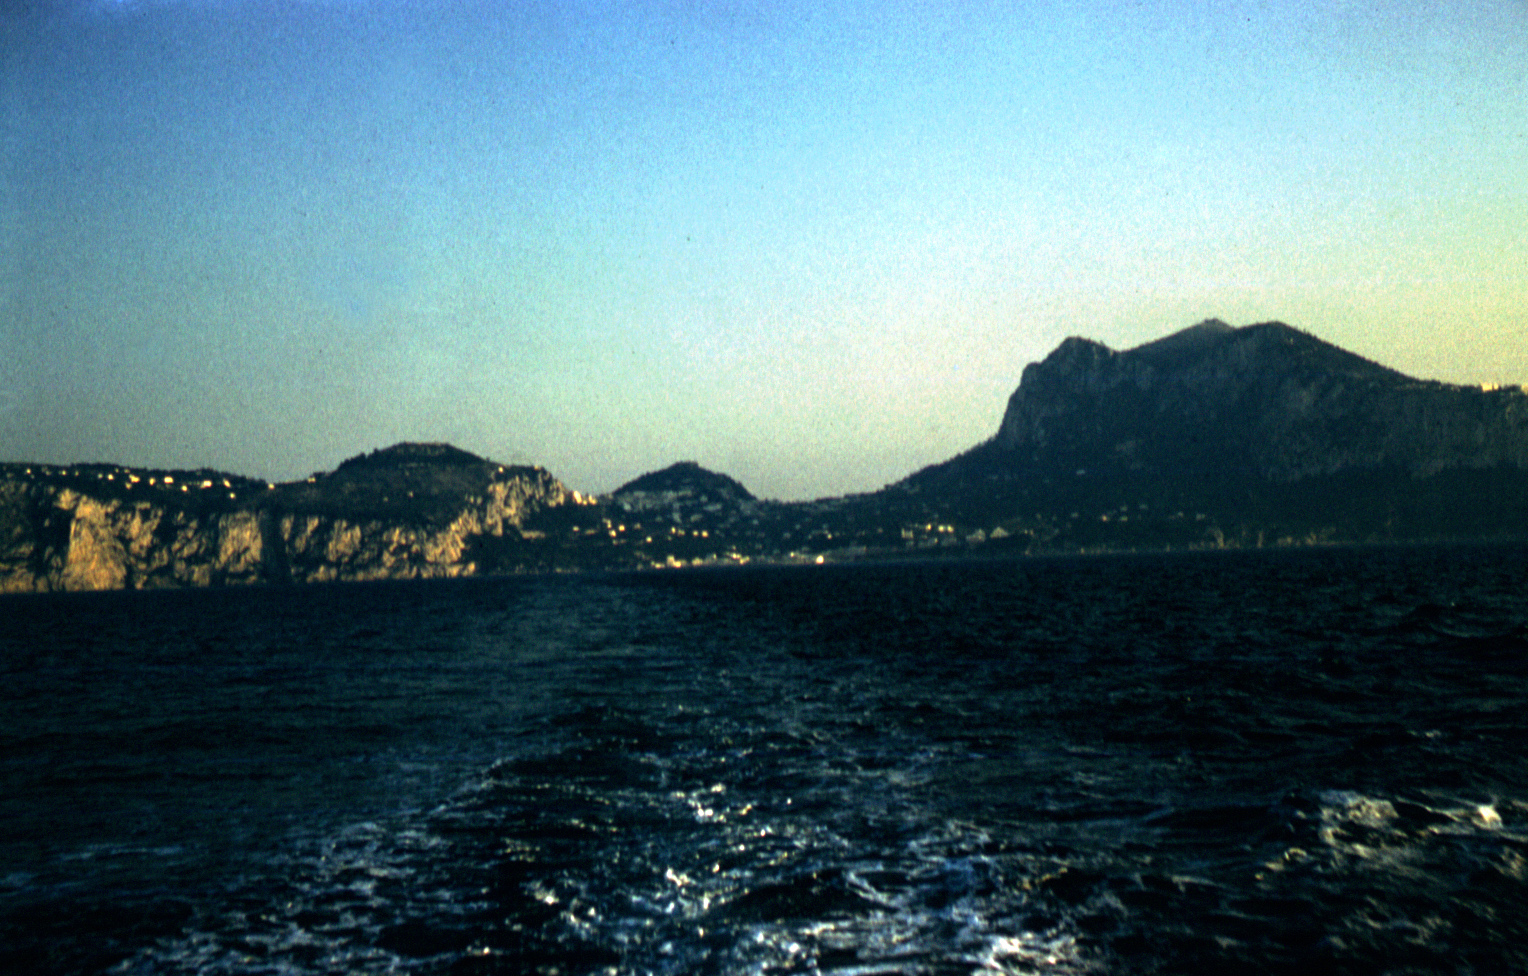 094-aug61-cannesnice-capri